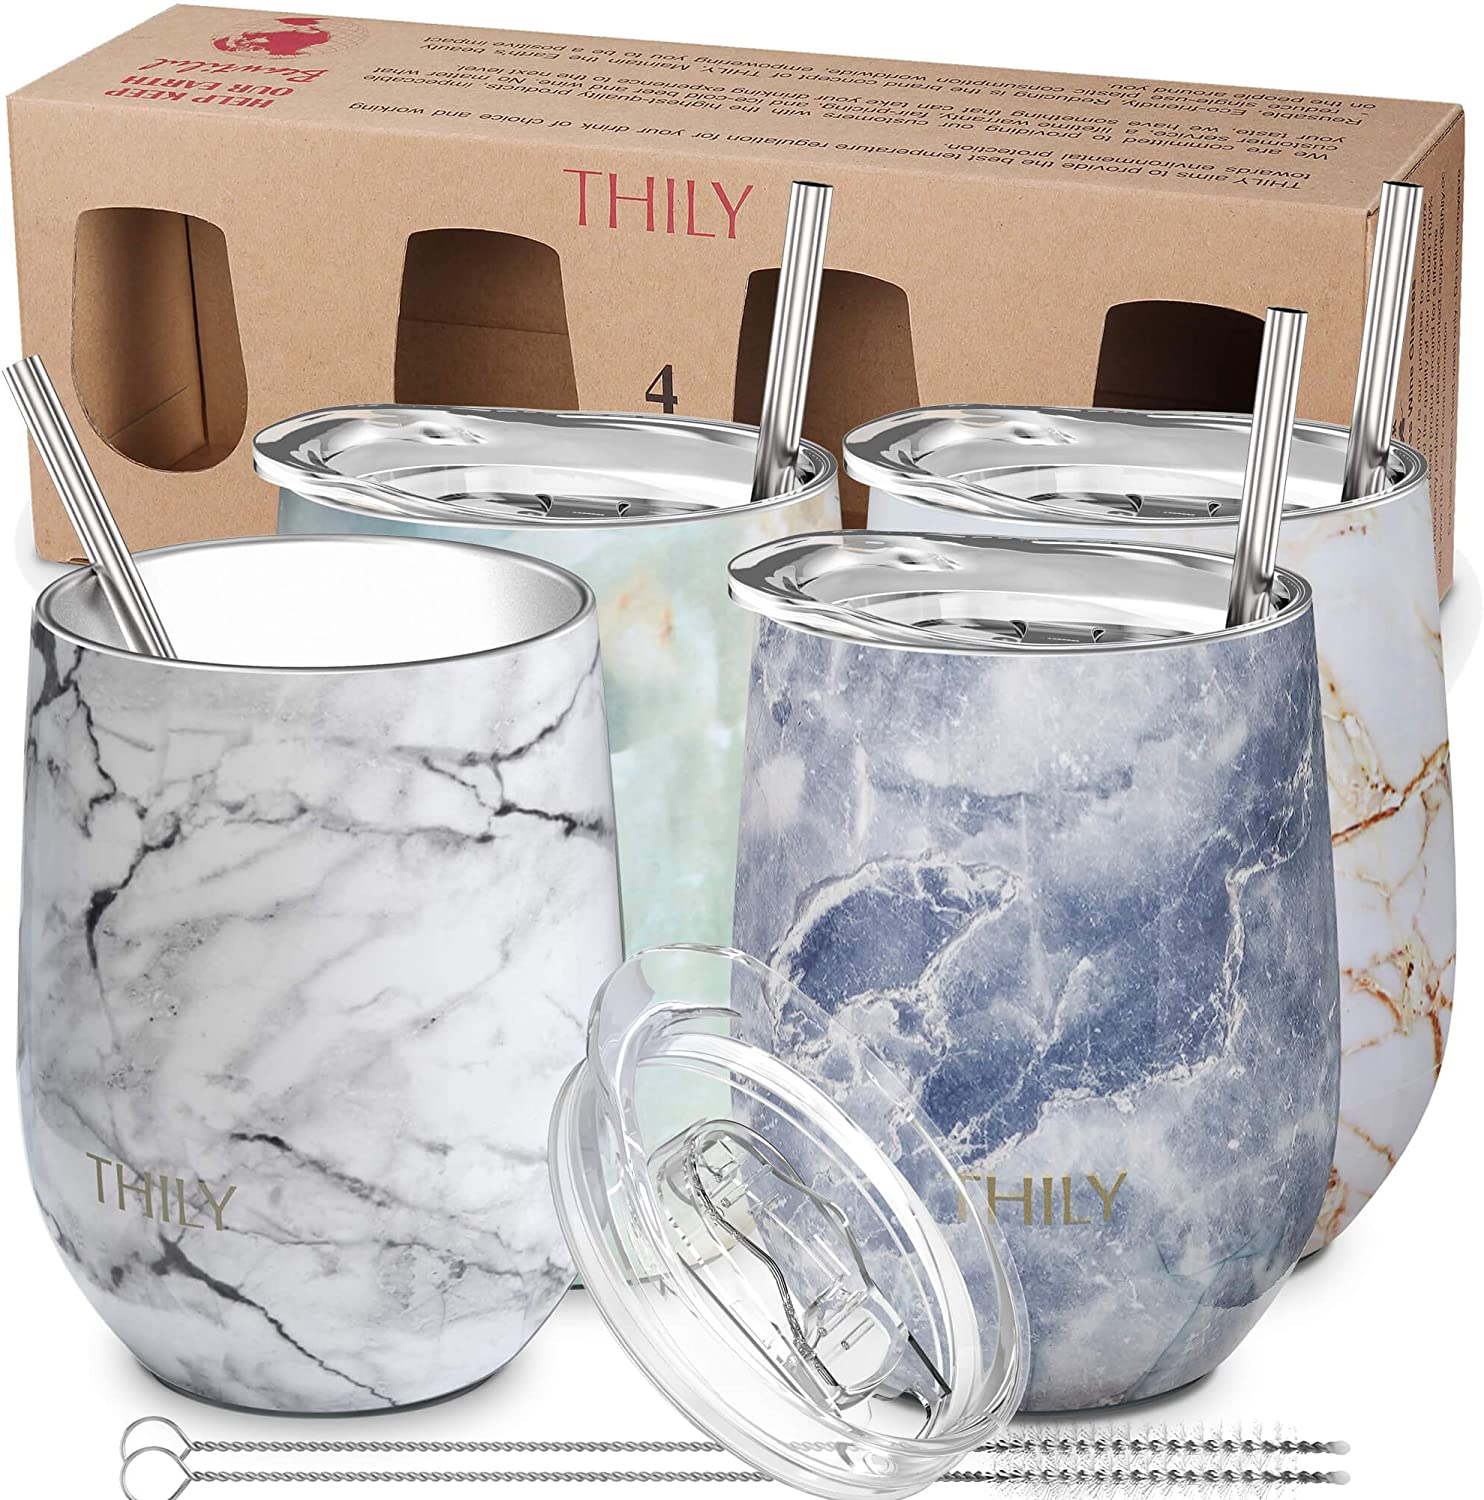 Stainless Steel Stemless Wine Tumbler - THILY 4 Pack Vacuum Insulated Travel Wine Glasses with Sliding Lids and Straws, 12 oz, Keep Cold for Juice, Coffee, Beer, 4 Different Marbles Set